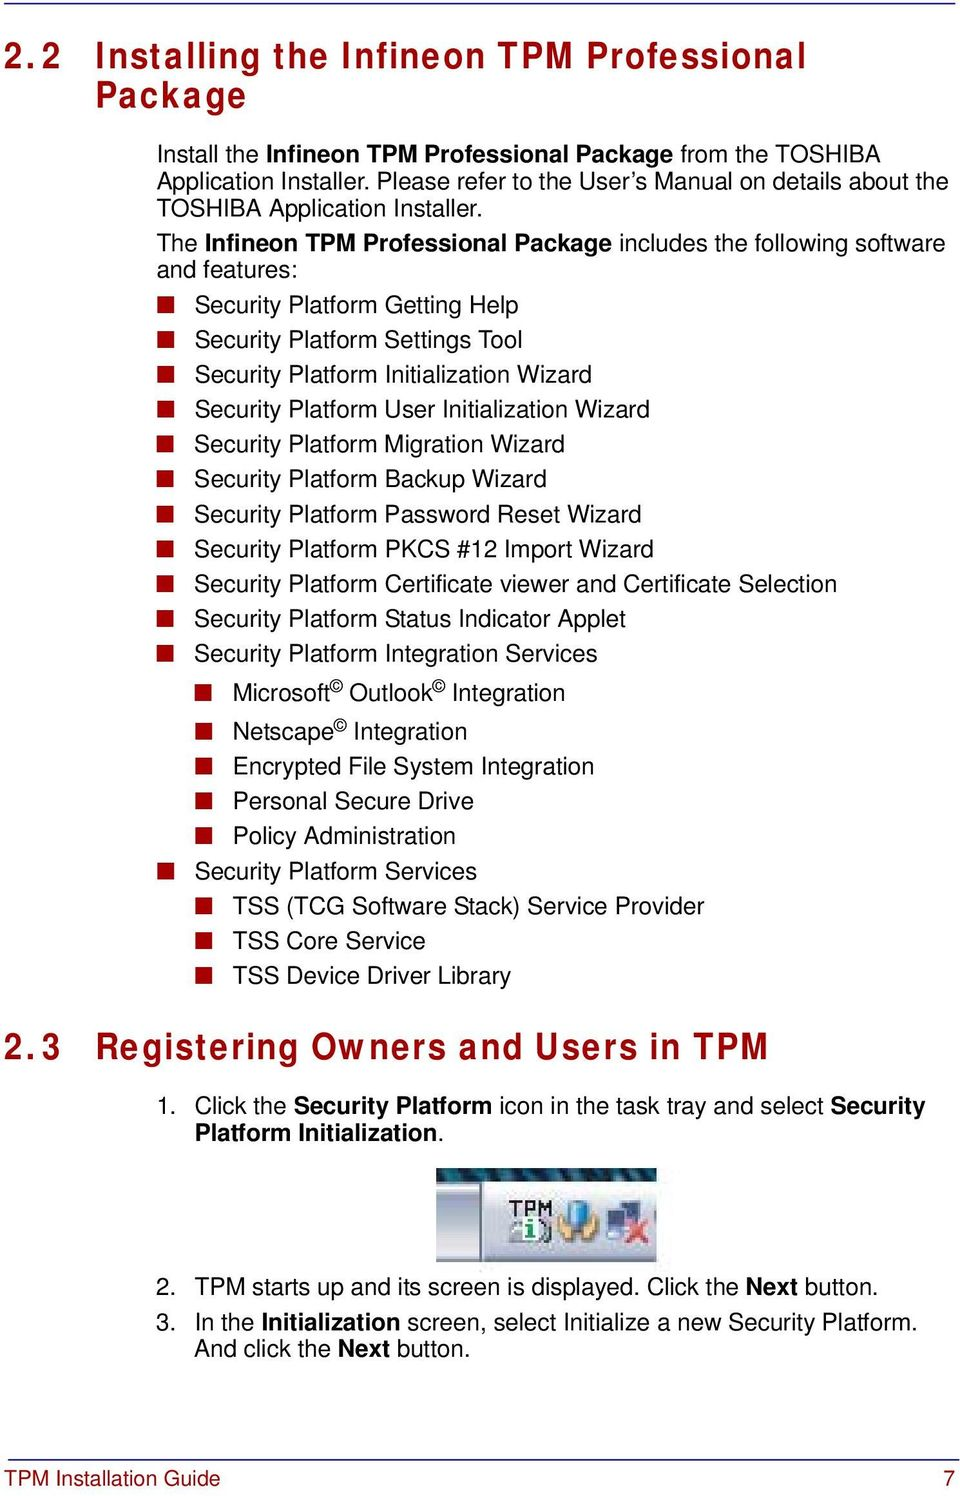 The Infineon TPM Professional Package includes the following software and features: Security Platform Getting Help Security Platform Settings Tool Security Platform Initialization Wizard Security